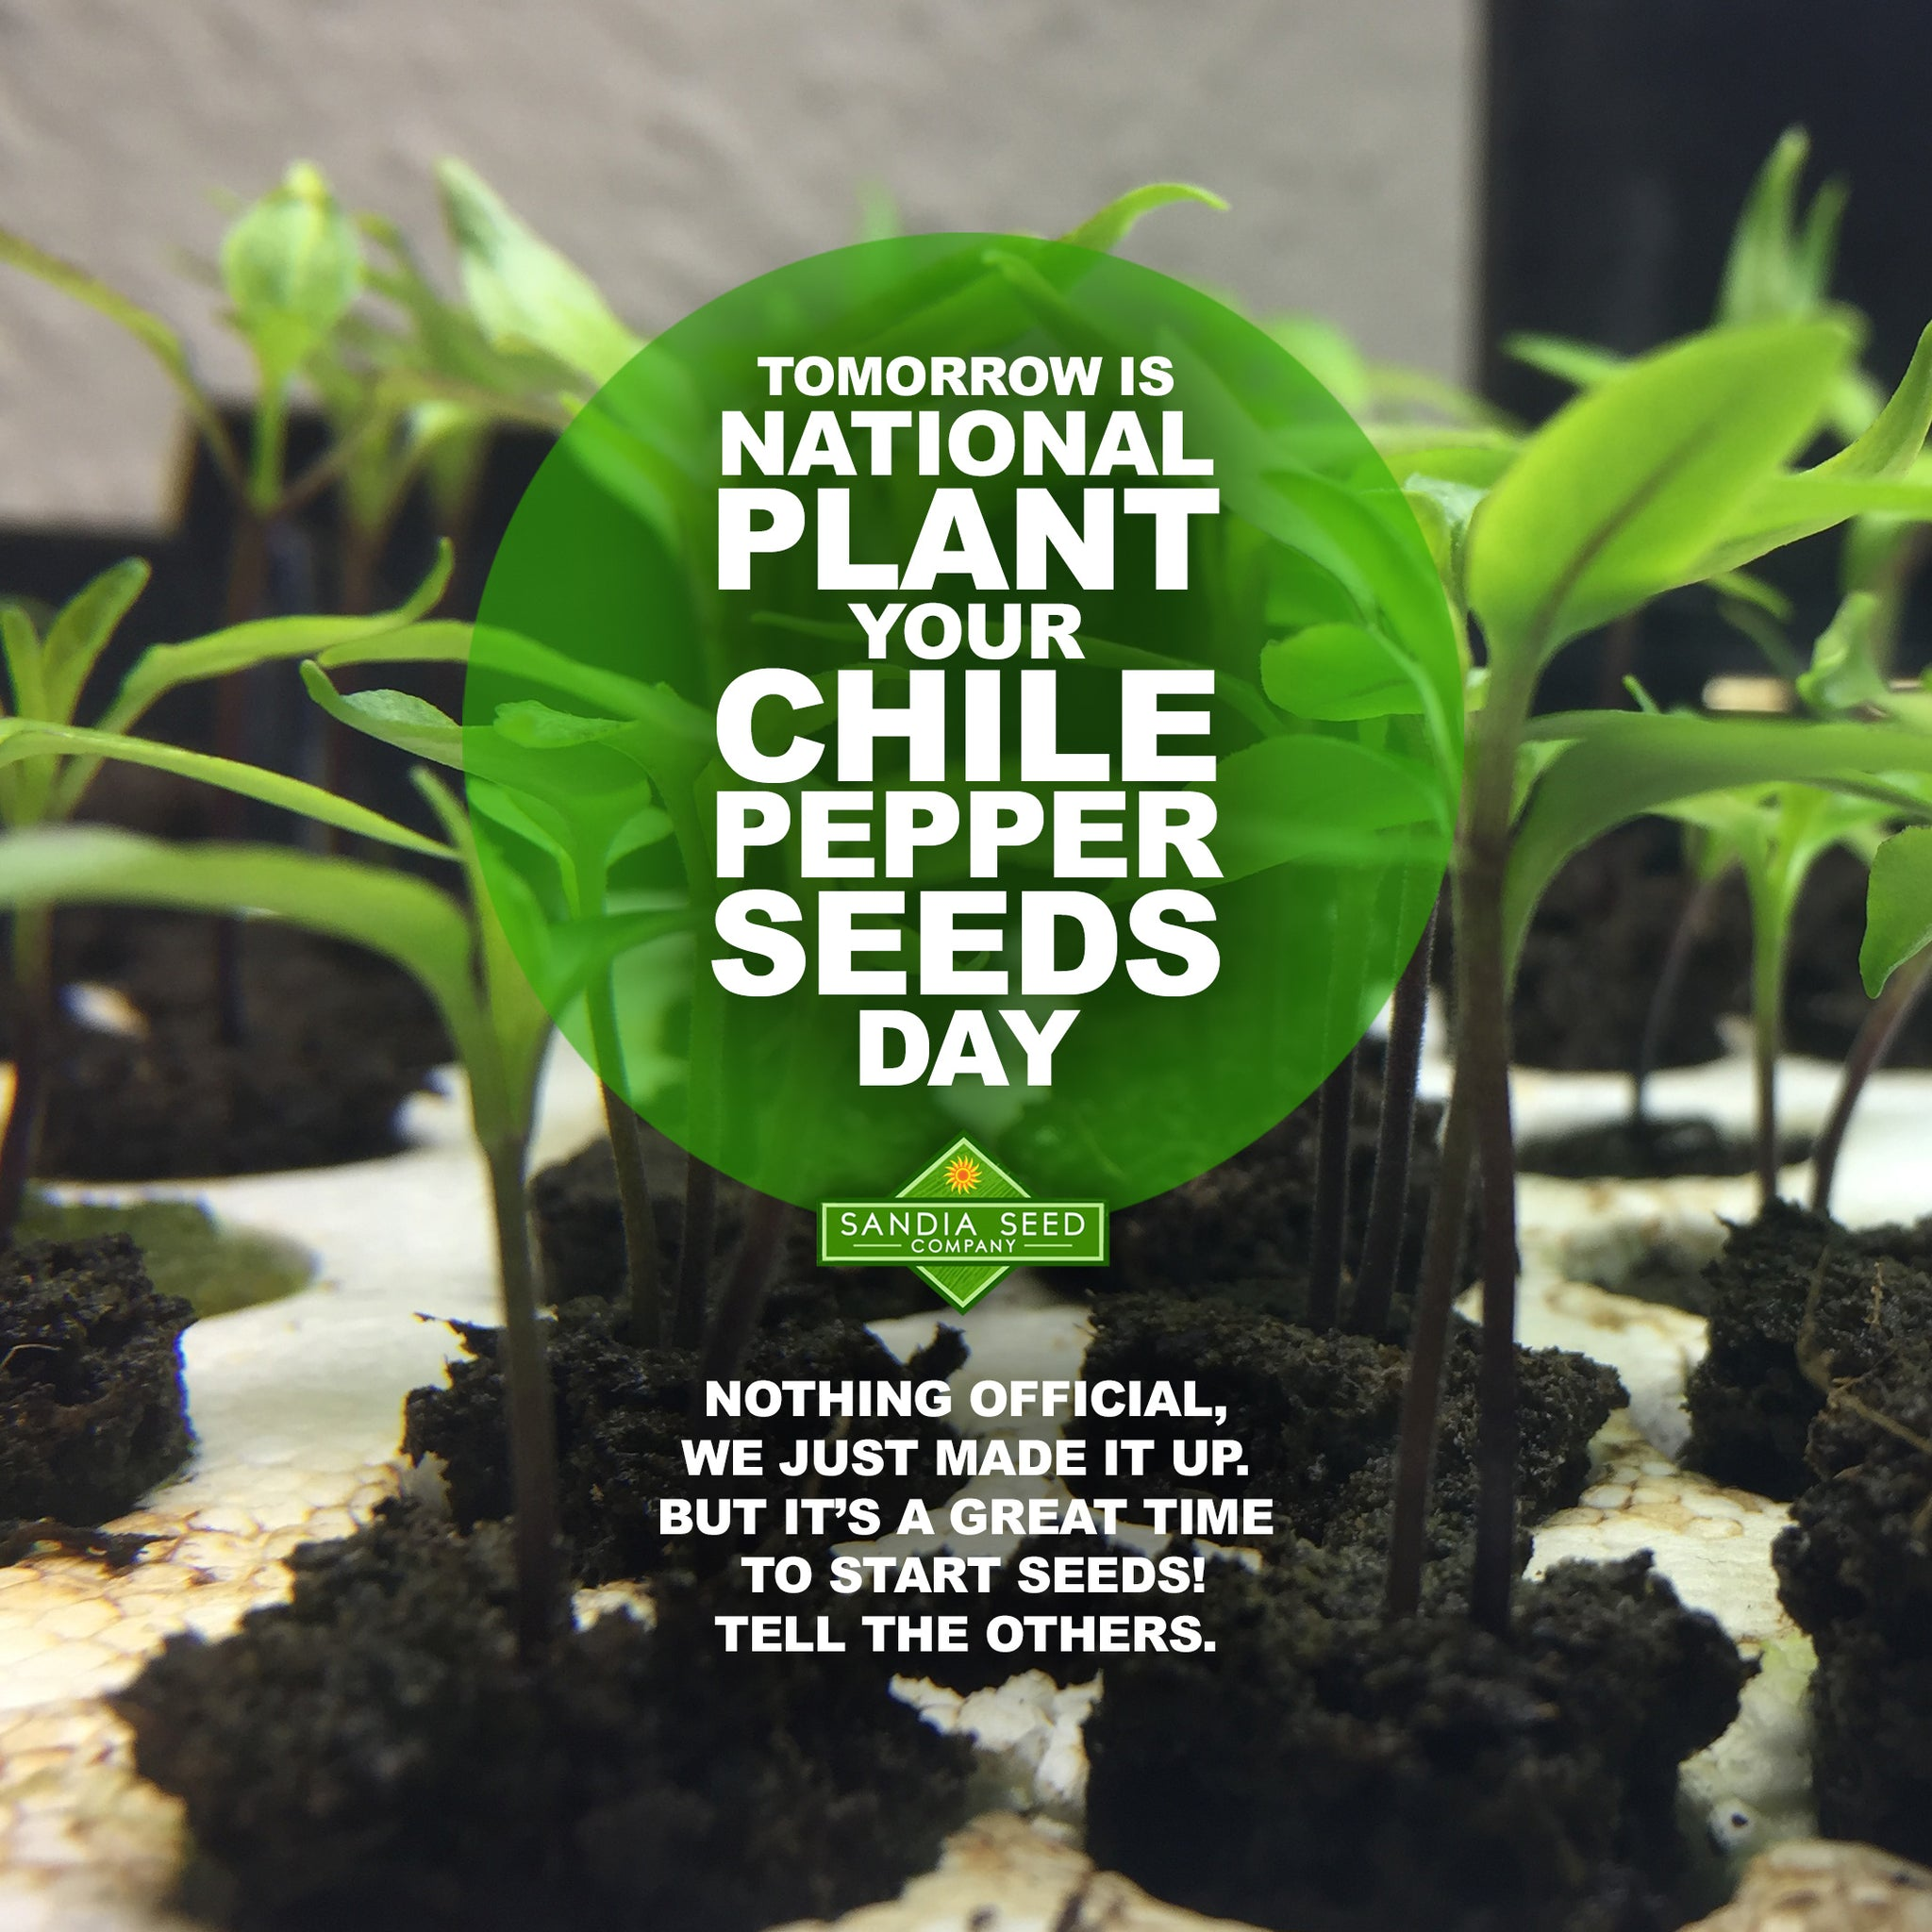 National Plant Your Chile Pepper Seeds Day